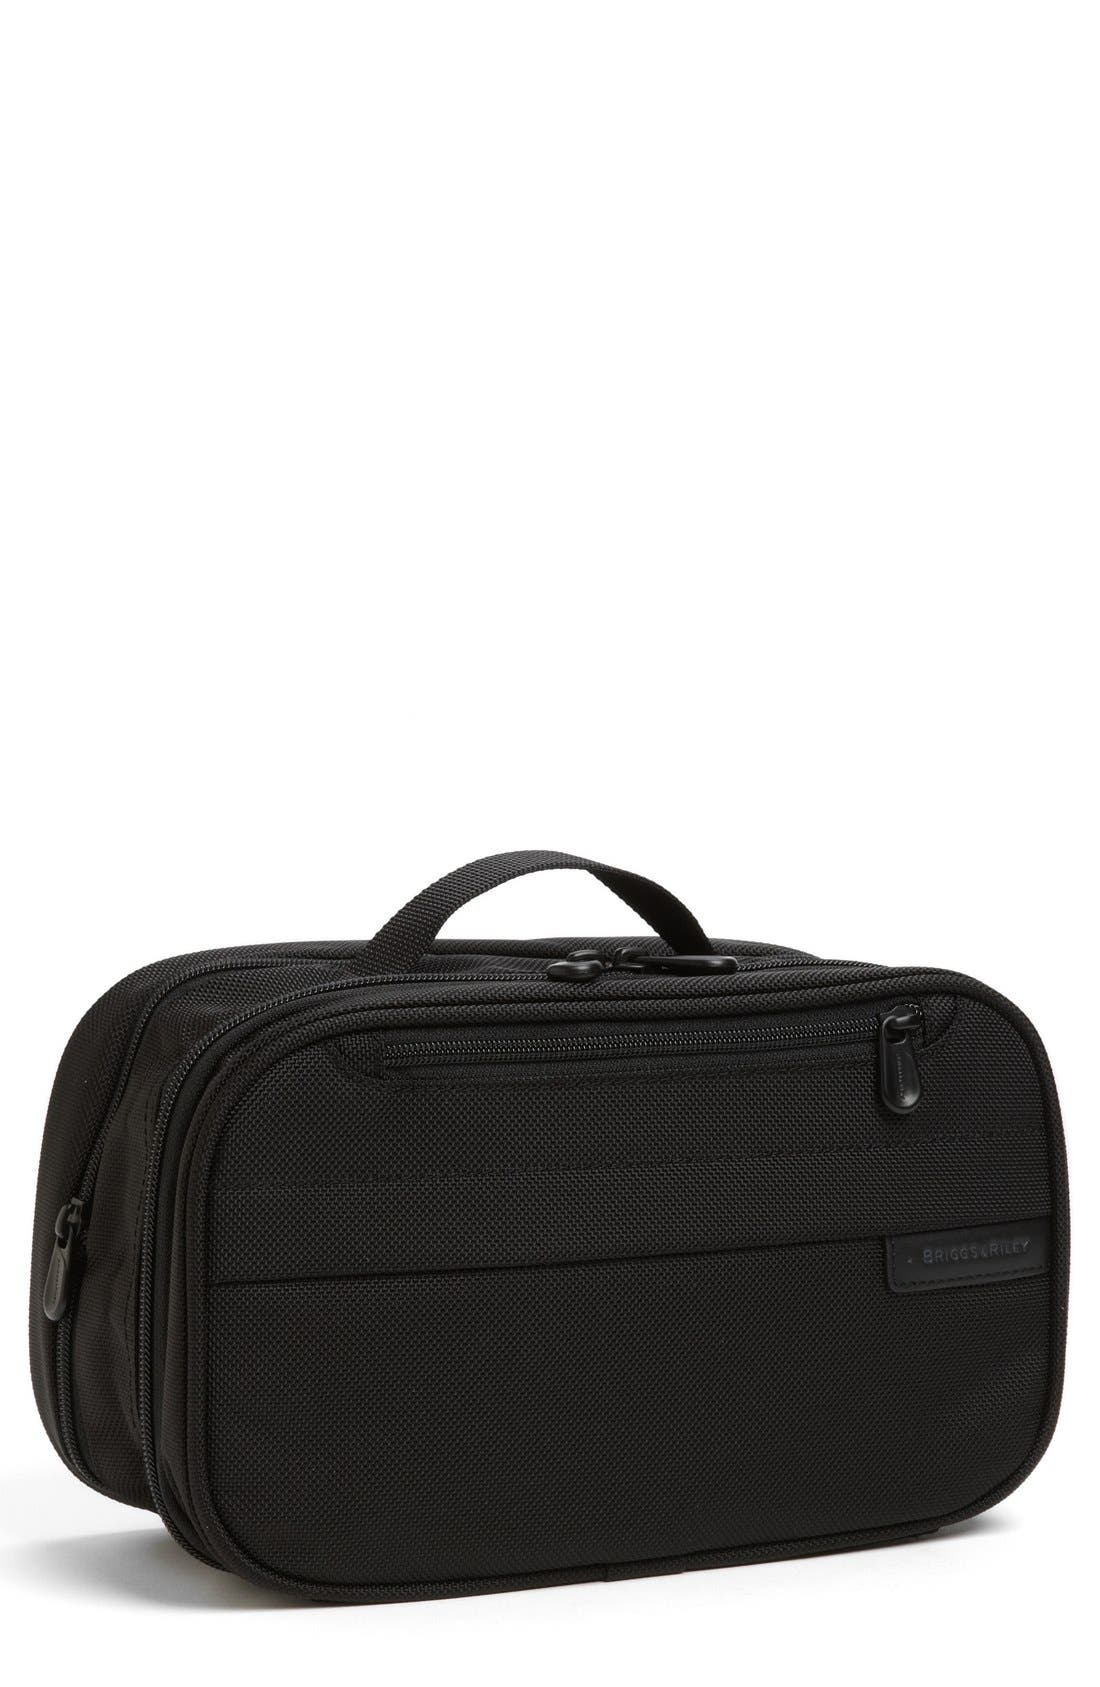 BRIGGS & RILEY Baseline Expandable Toiletry Kit, Main, color, BLACK